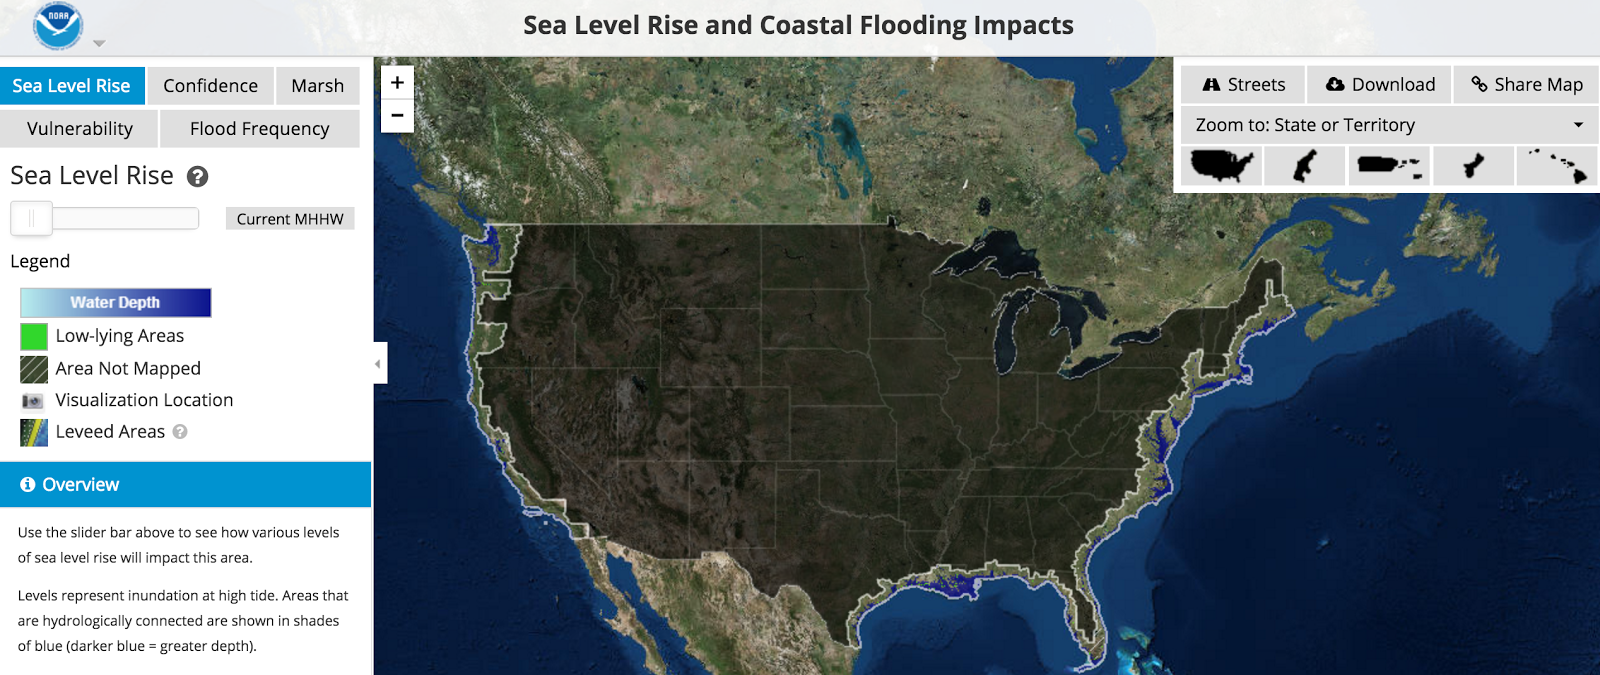 impacts of sea level rise Air & climate  climate change  acting on climate change impacts  responding to sea level rise climate change about climate change responding to sea level rise.